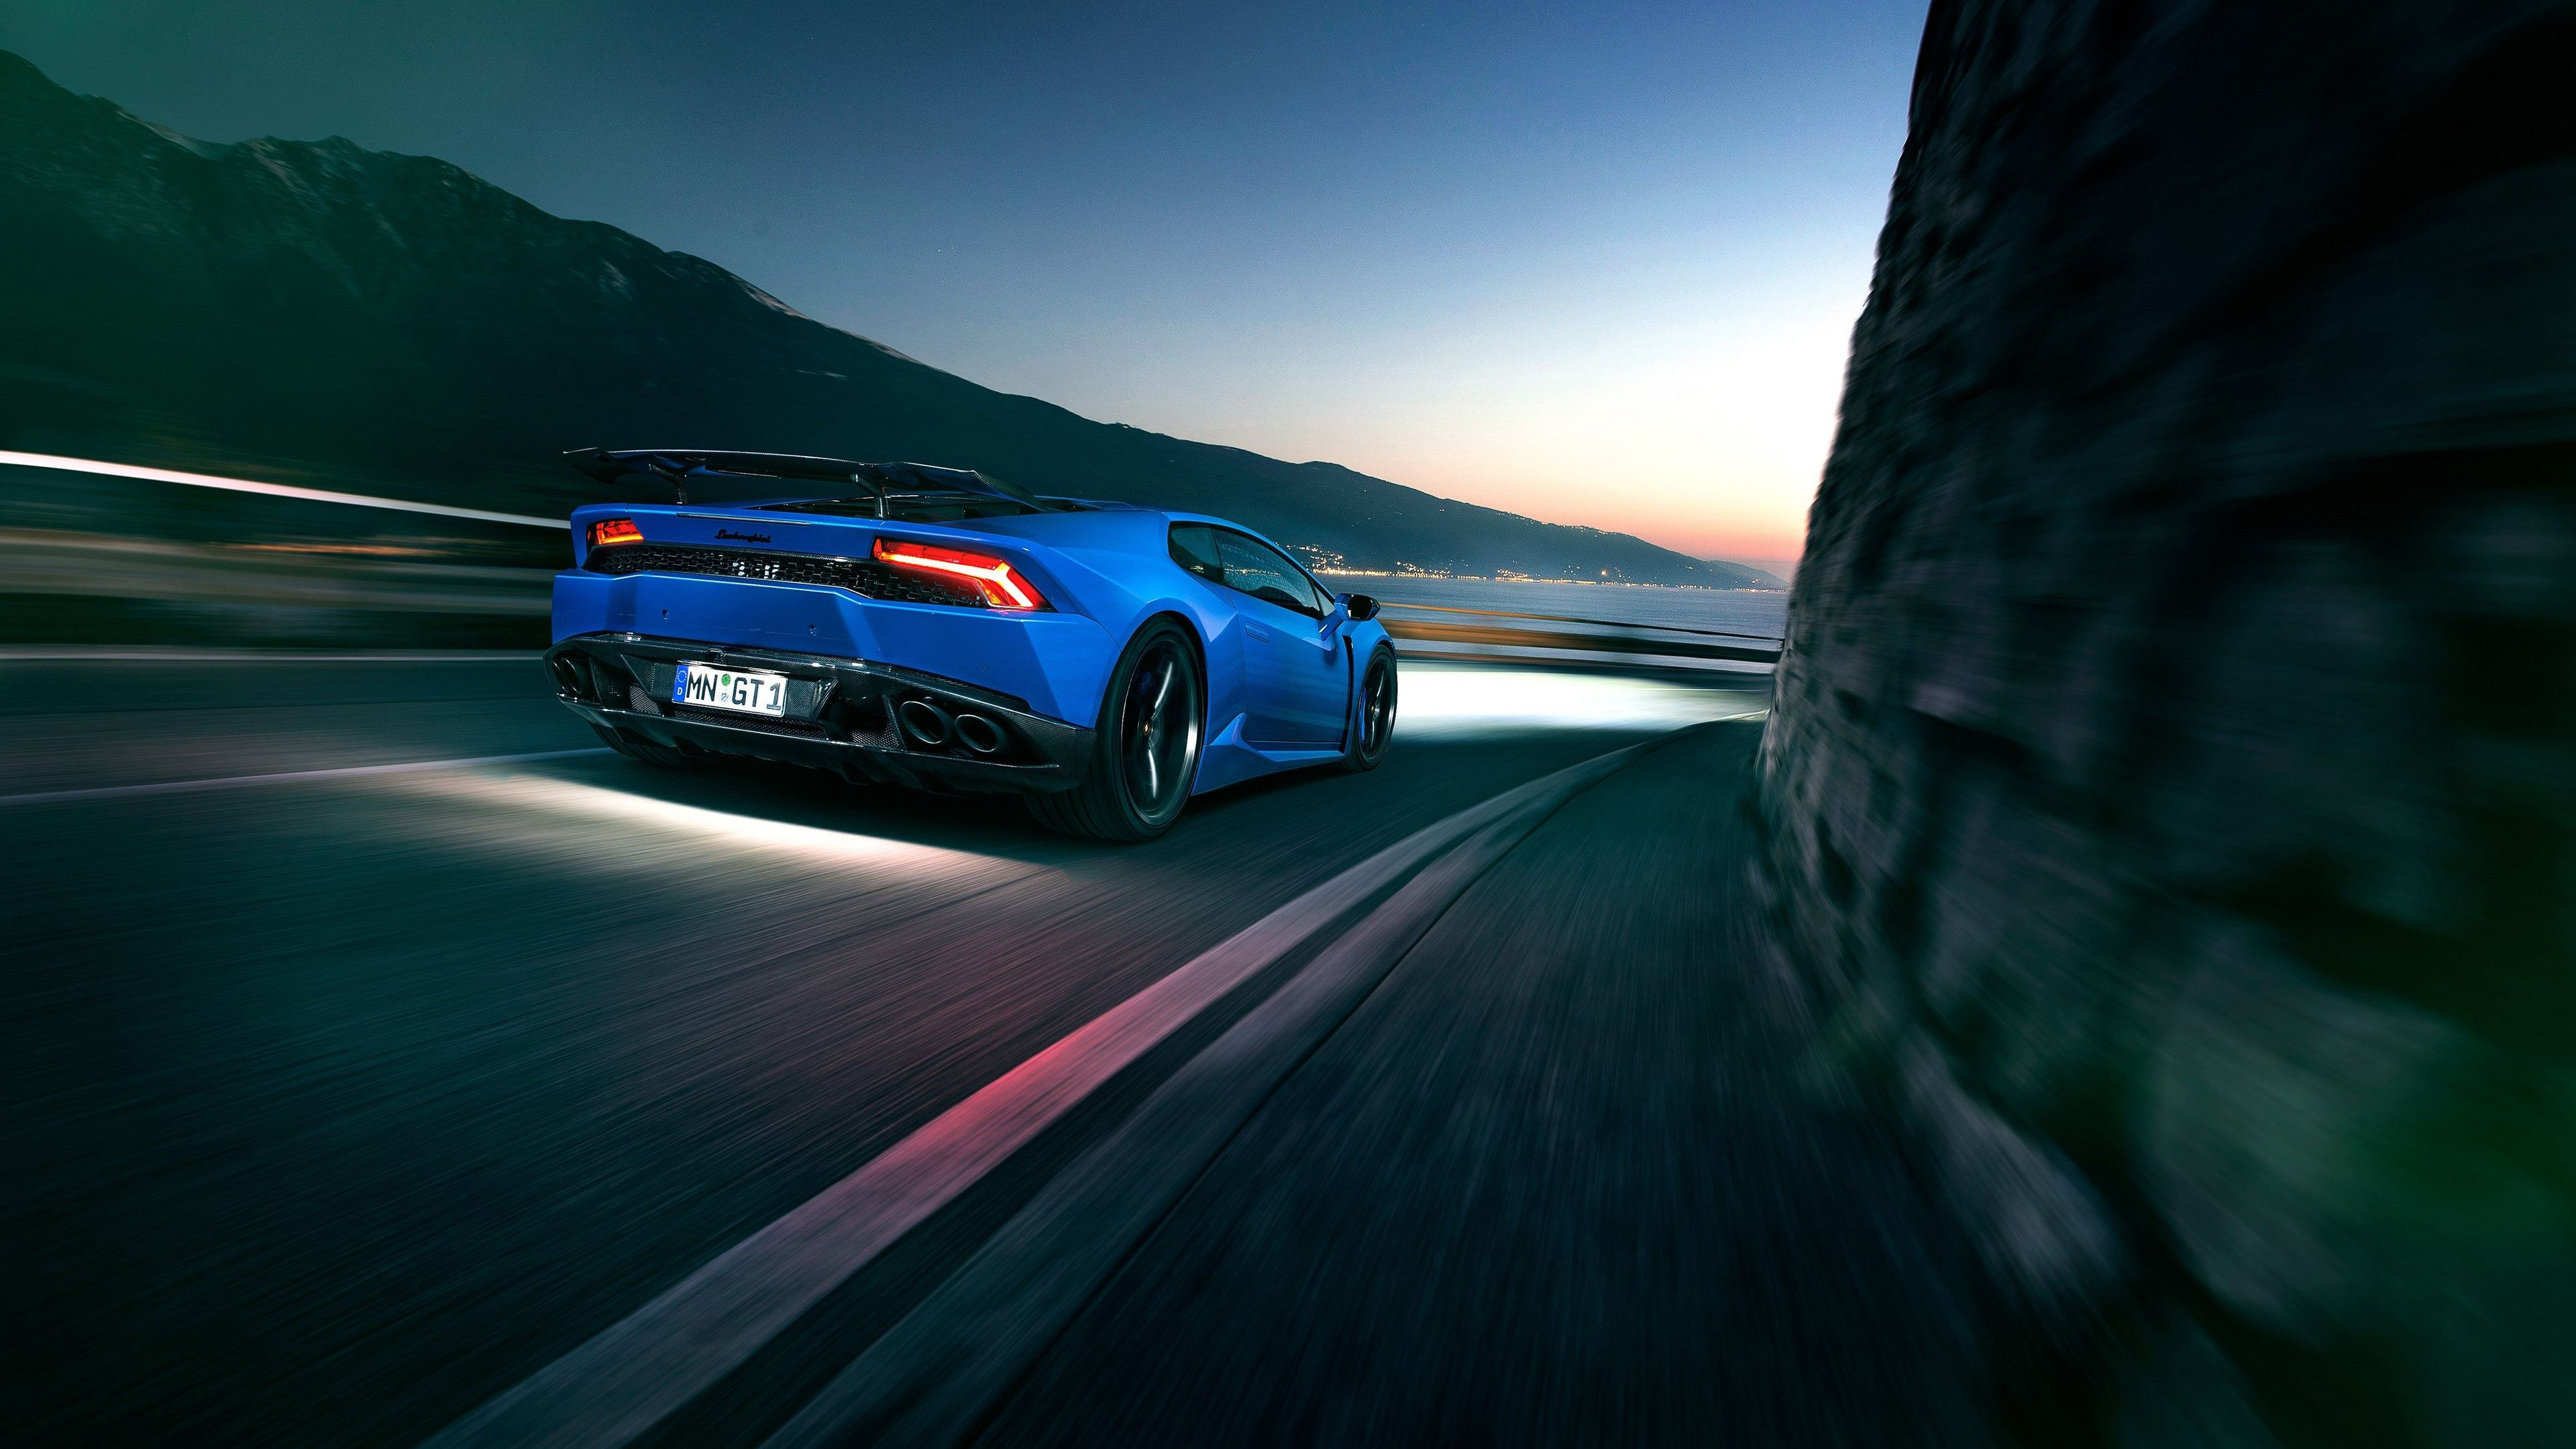 Novitec Torado Lamborghini Huracan 4k Rear Novitec Wallpapers Lamborghini Wallpapers Lamborghini Hura Sports Car Wallpaper Car Wallpapers Lamborghini Huracan